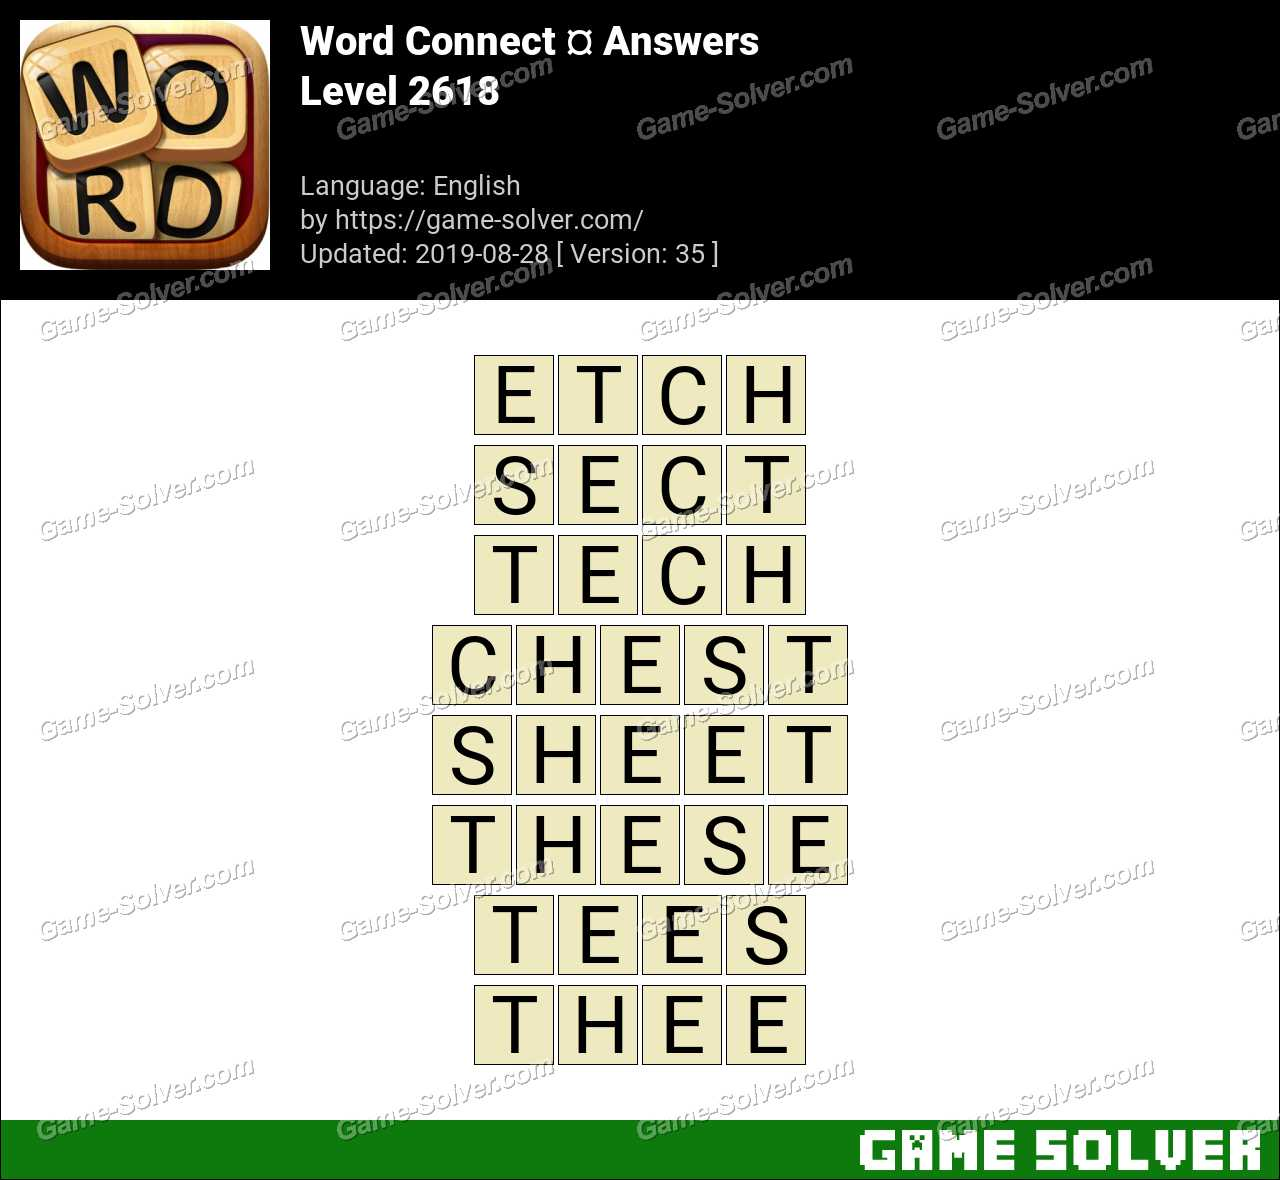 Word Connect Level 2618 Answers